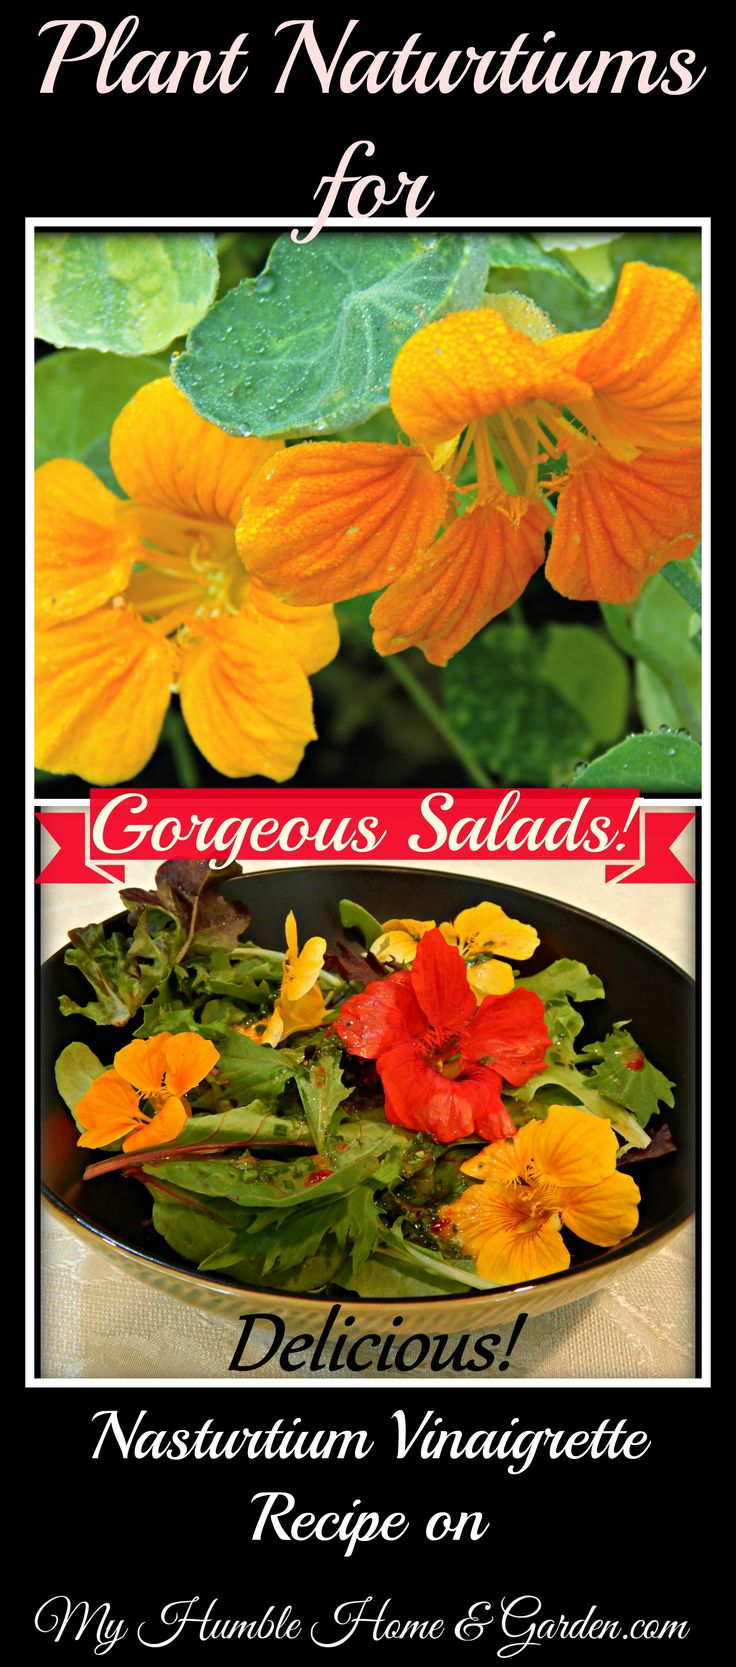 Epsom decking over a raised eyesore ashwell landscapes - Plant Nasturtiums This Spring Impress Your Friends With Beautiful Delicious Salads This Summer